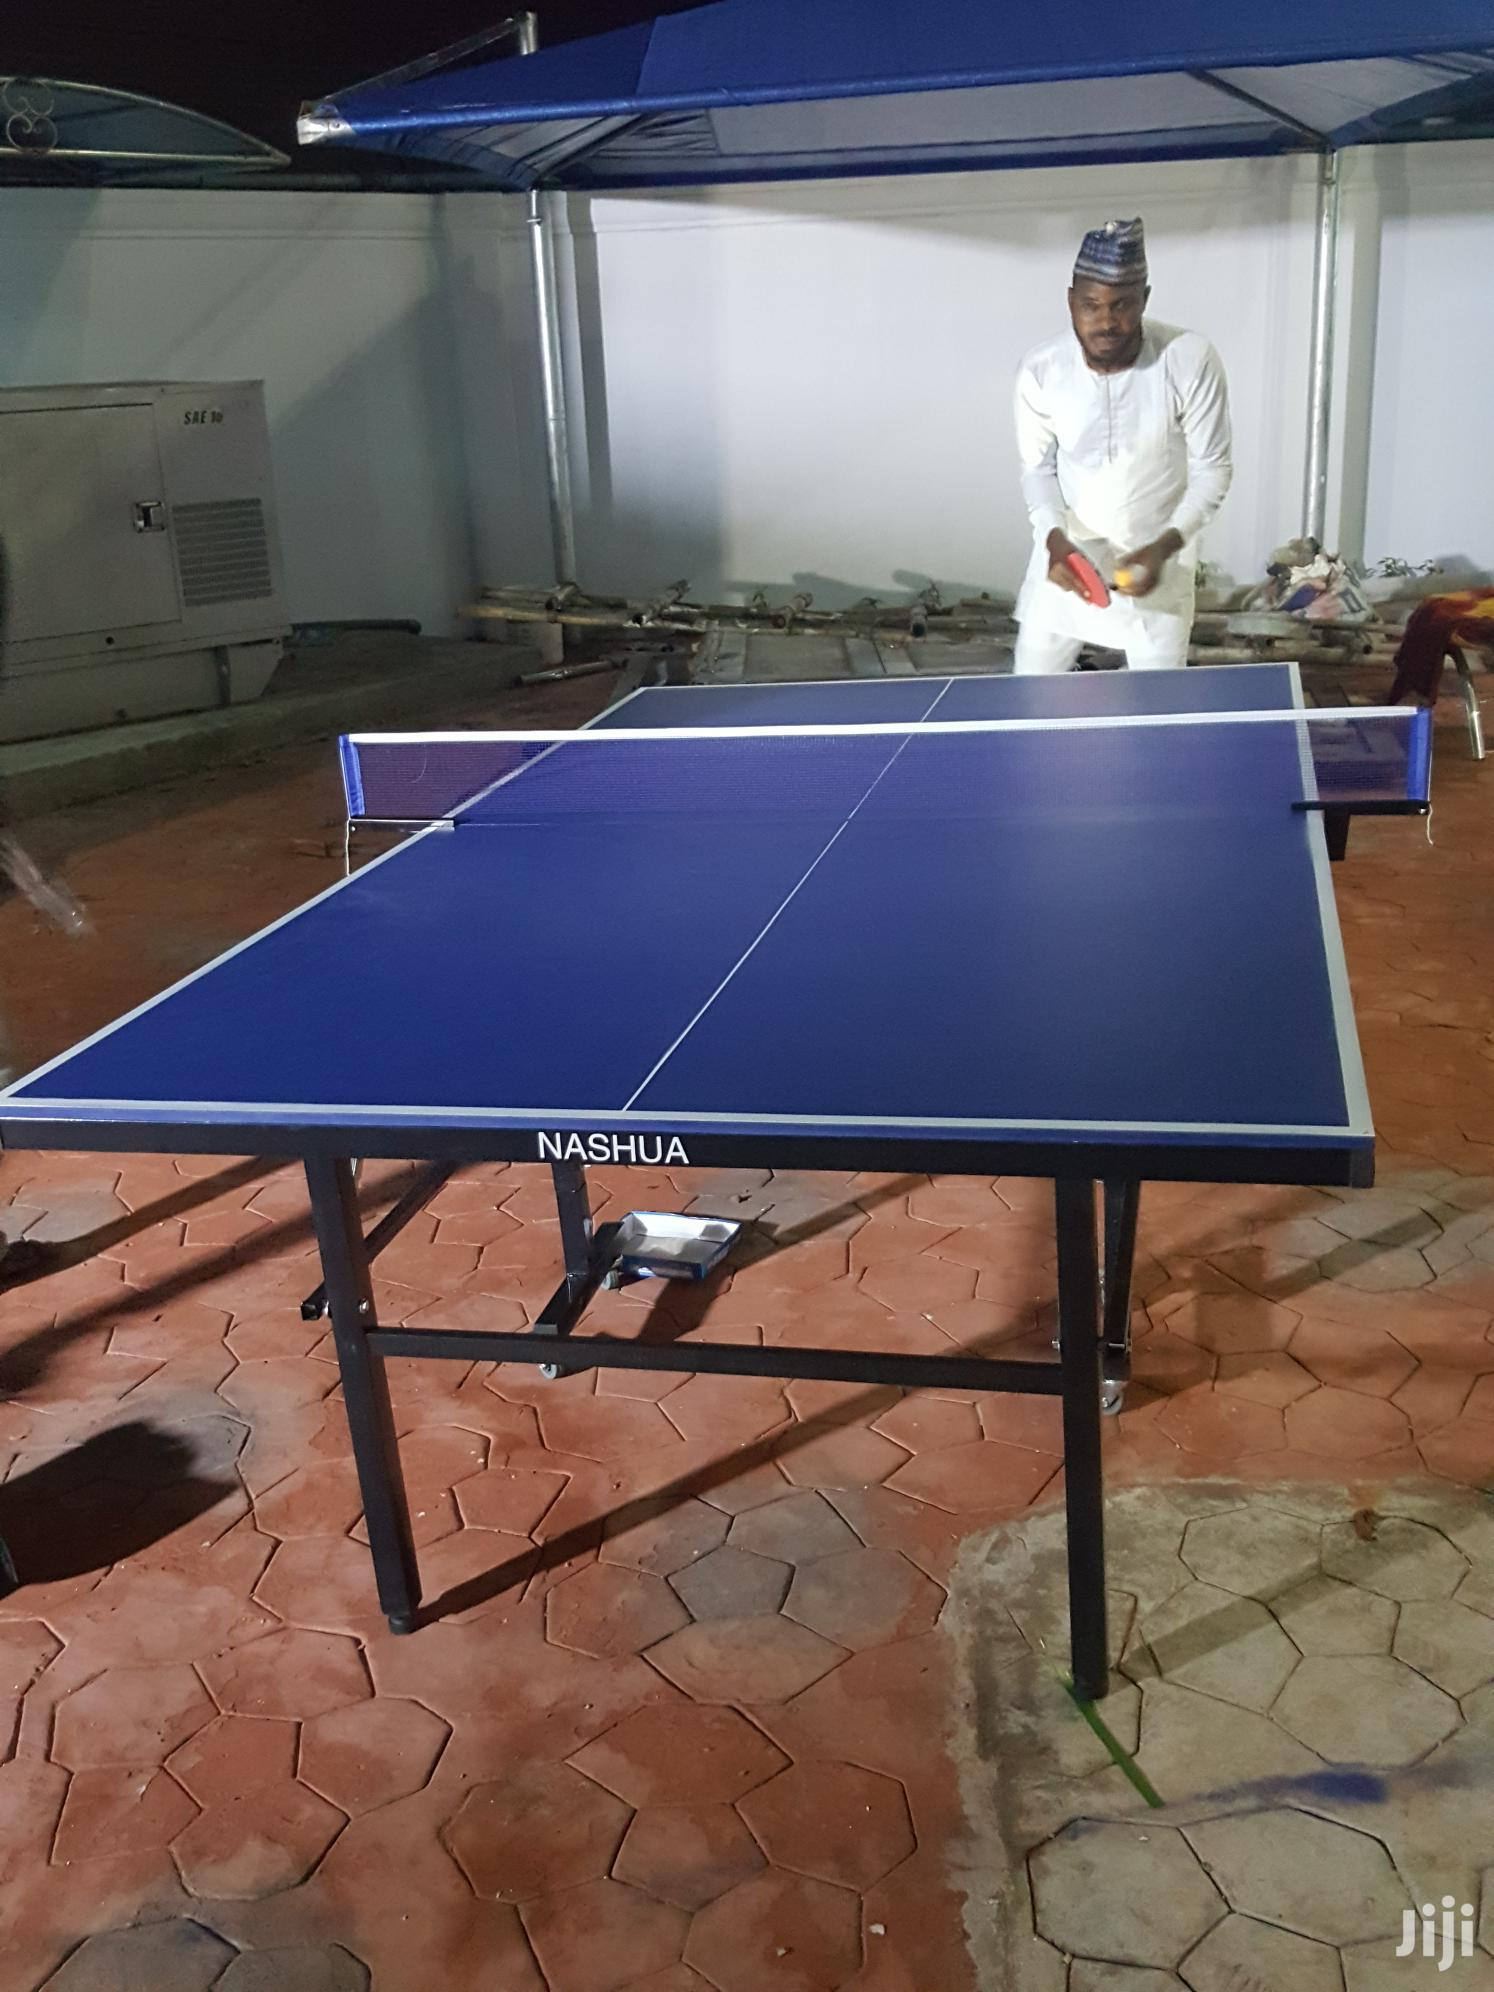 Outdoor Table Tennis Board | Sports Equipment for sale in Surulere, Lagos State, Nigeria